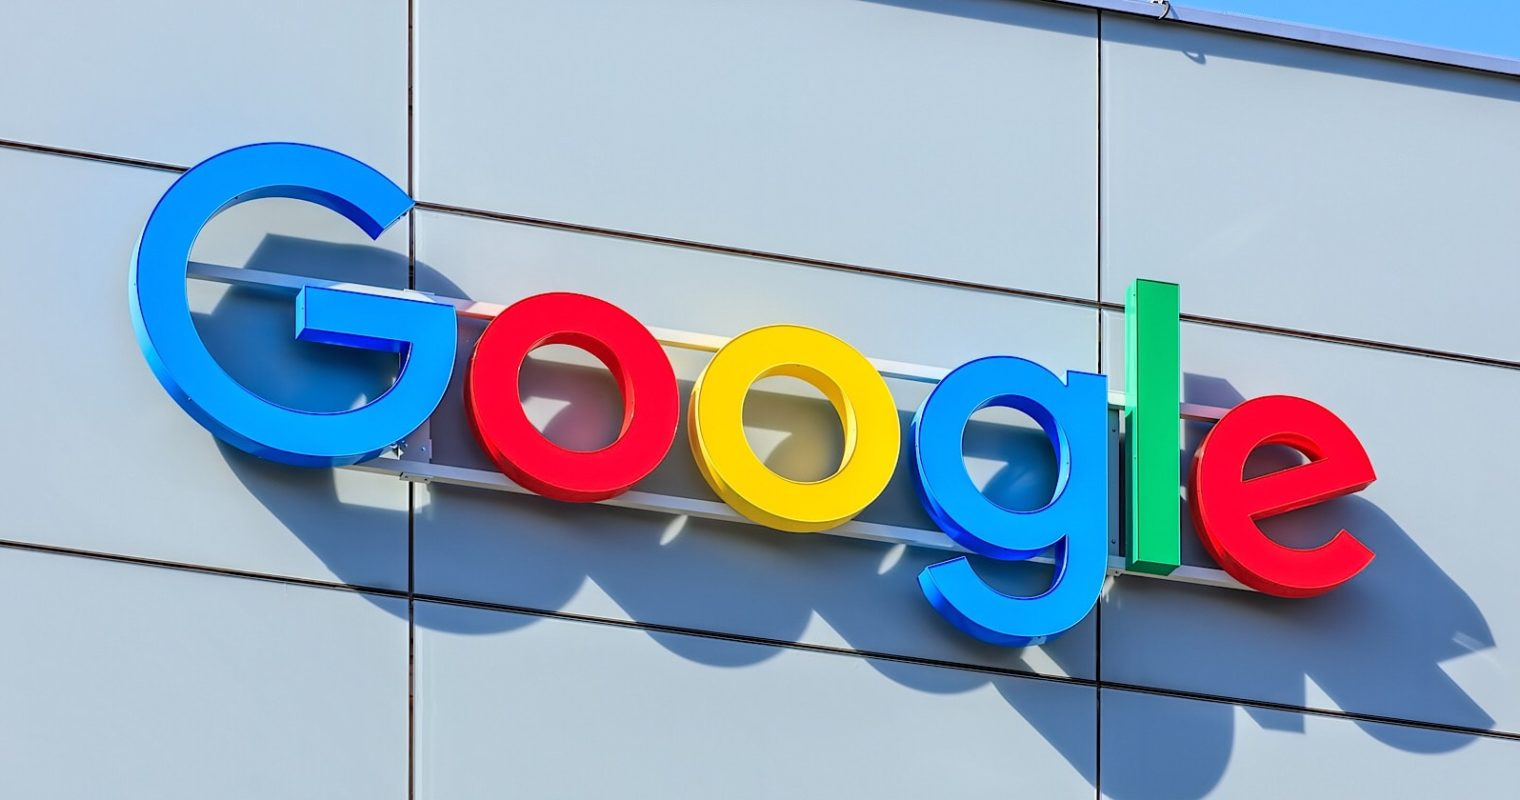 Google: Top Ranking Factors Change Depending on Query